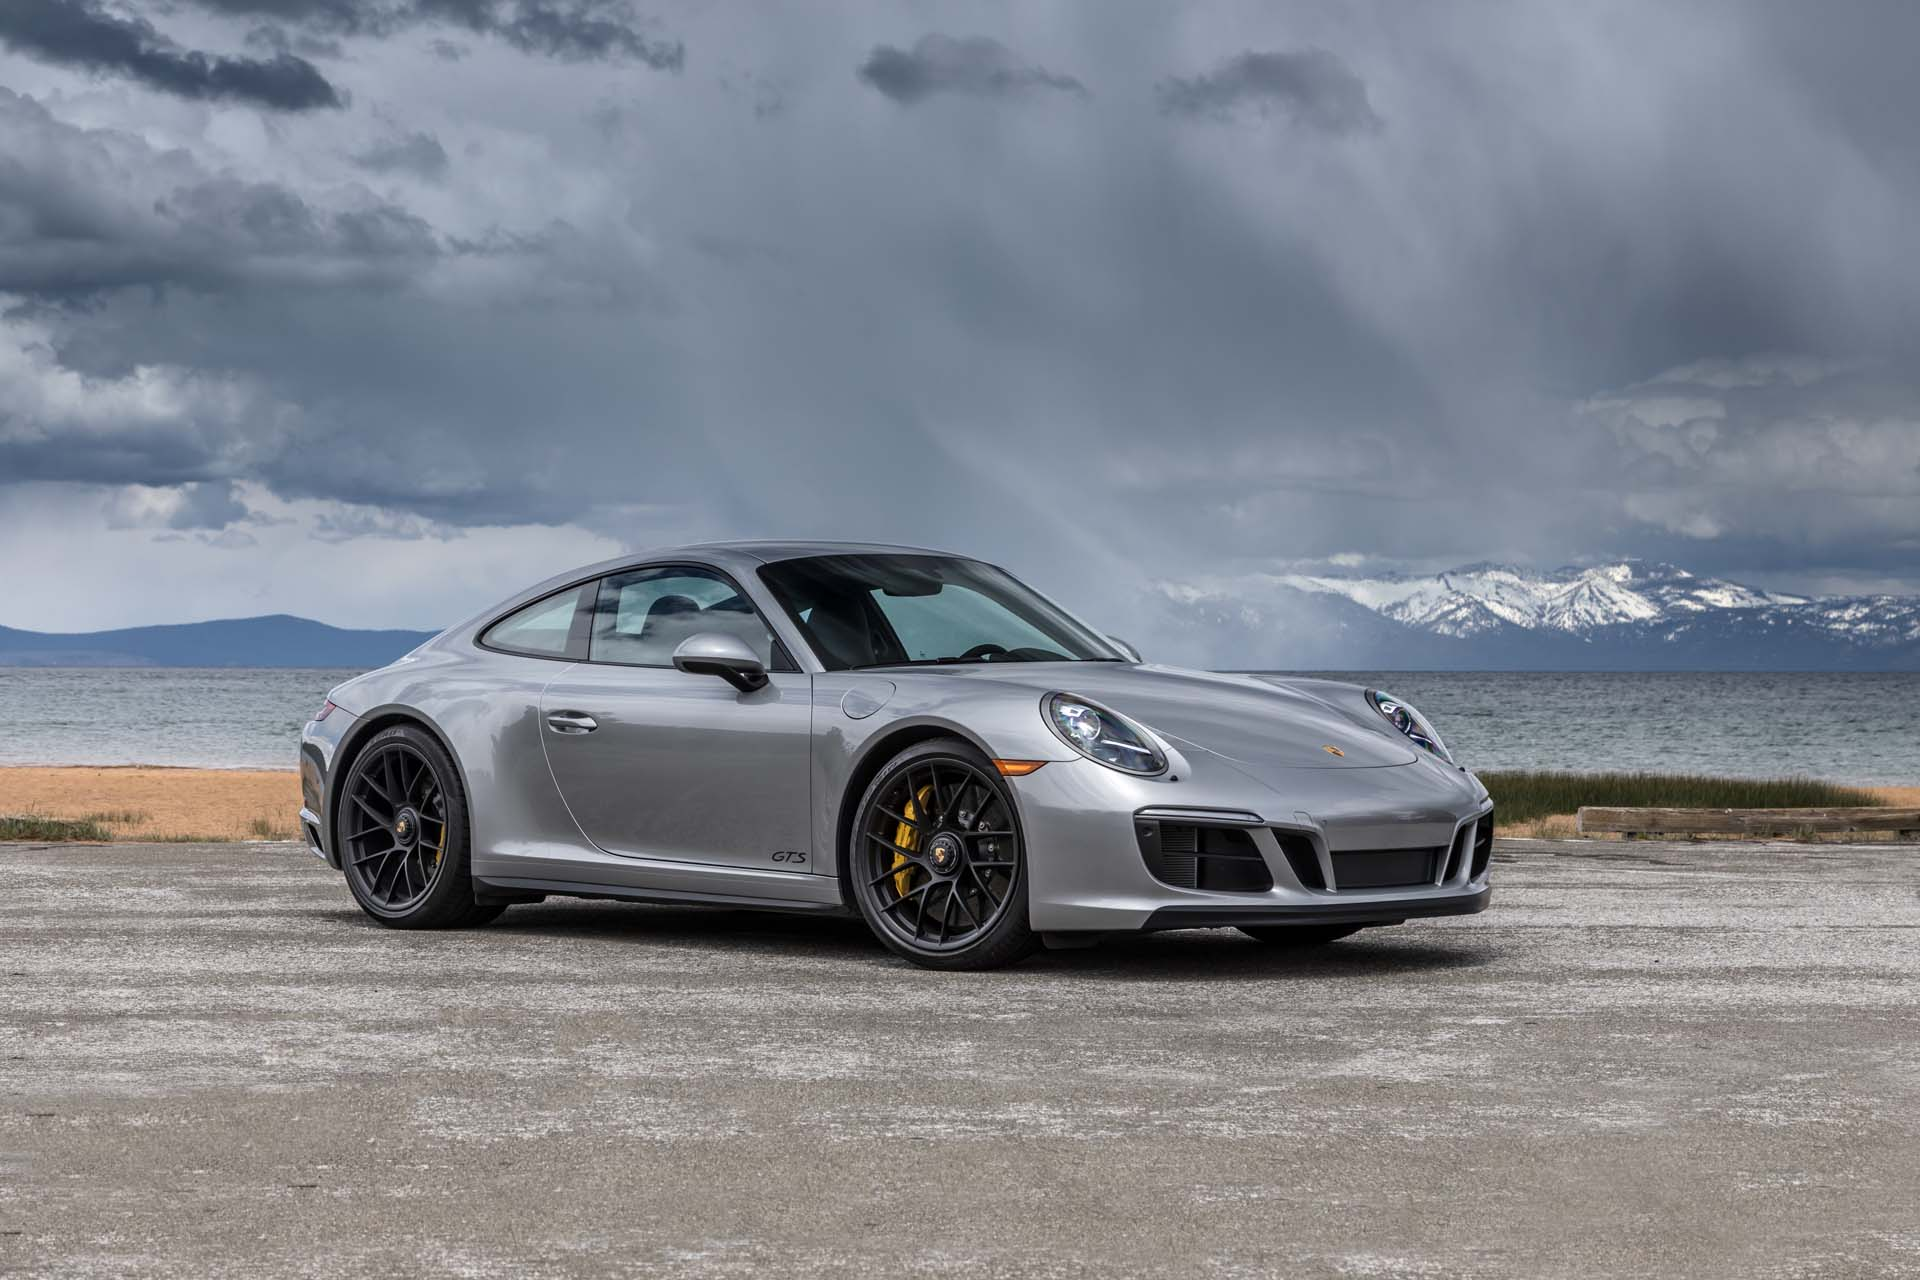 new and used porsche 911 prices photos reviews specs the car connection. Black Bedroom Furniture Sets. Home Design Ideas